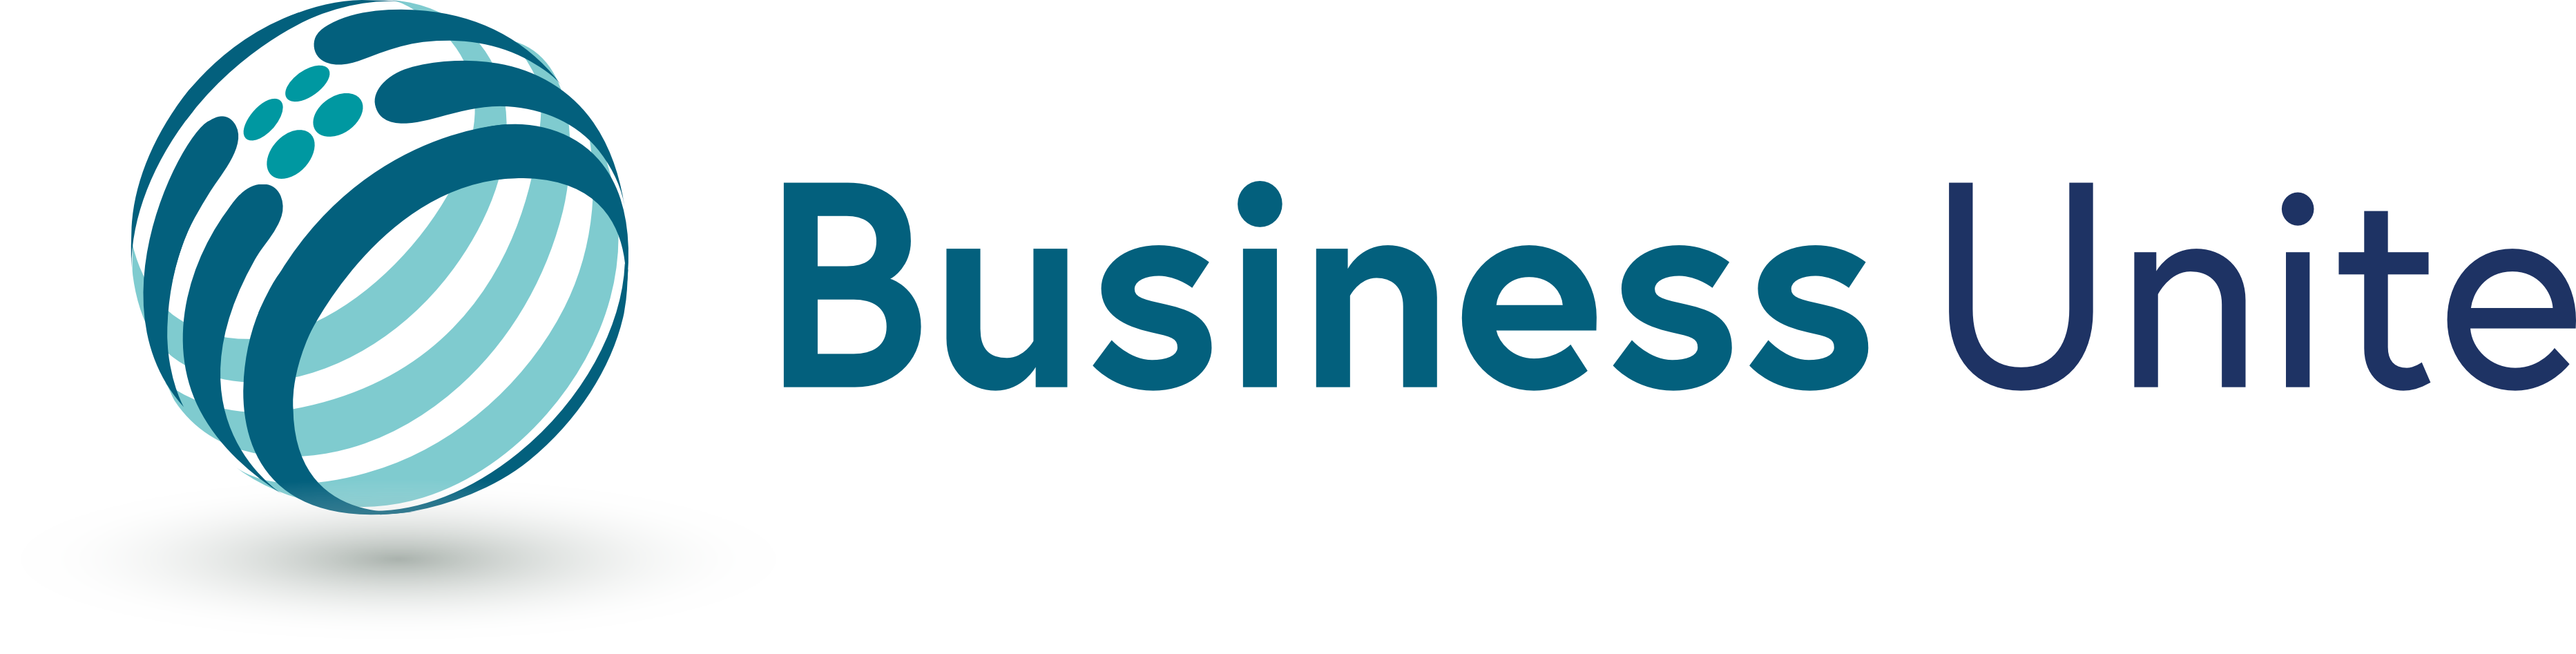 Business-Unite-logo